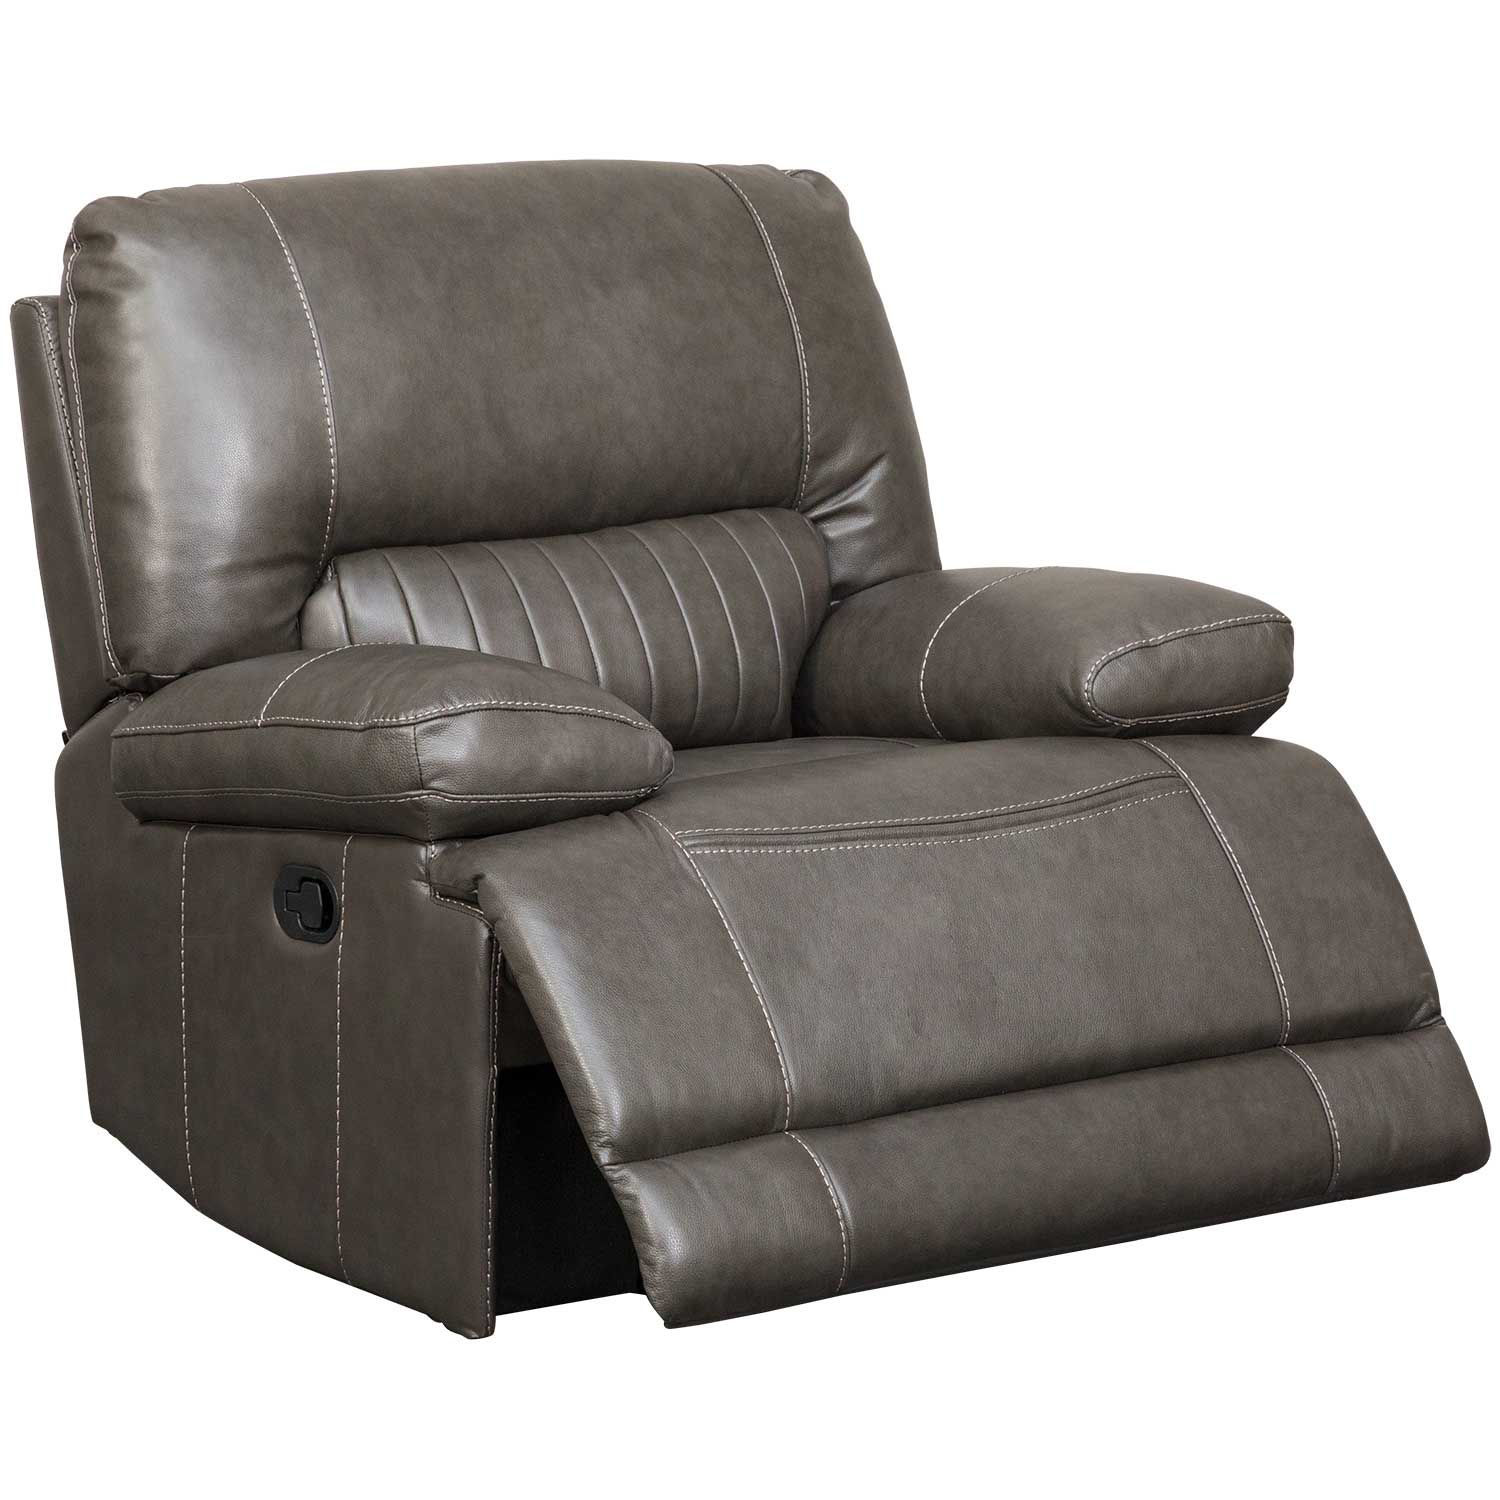 Picture of Rigby Gray Leather Recliner